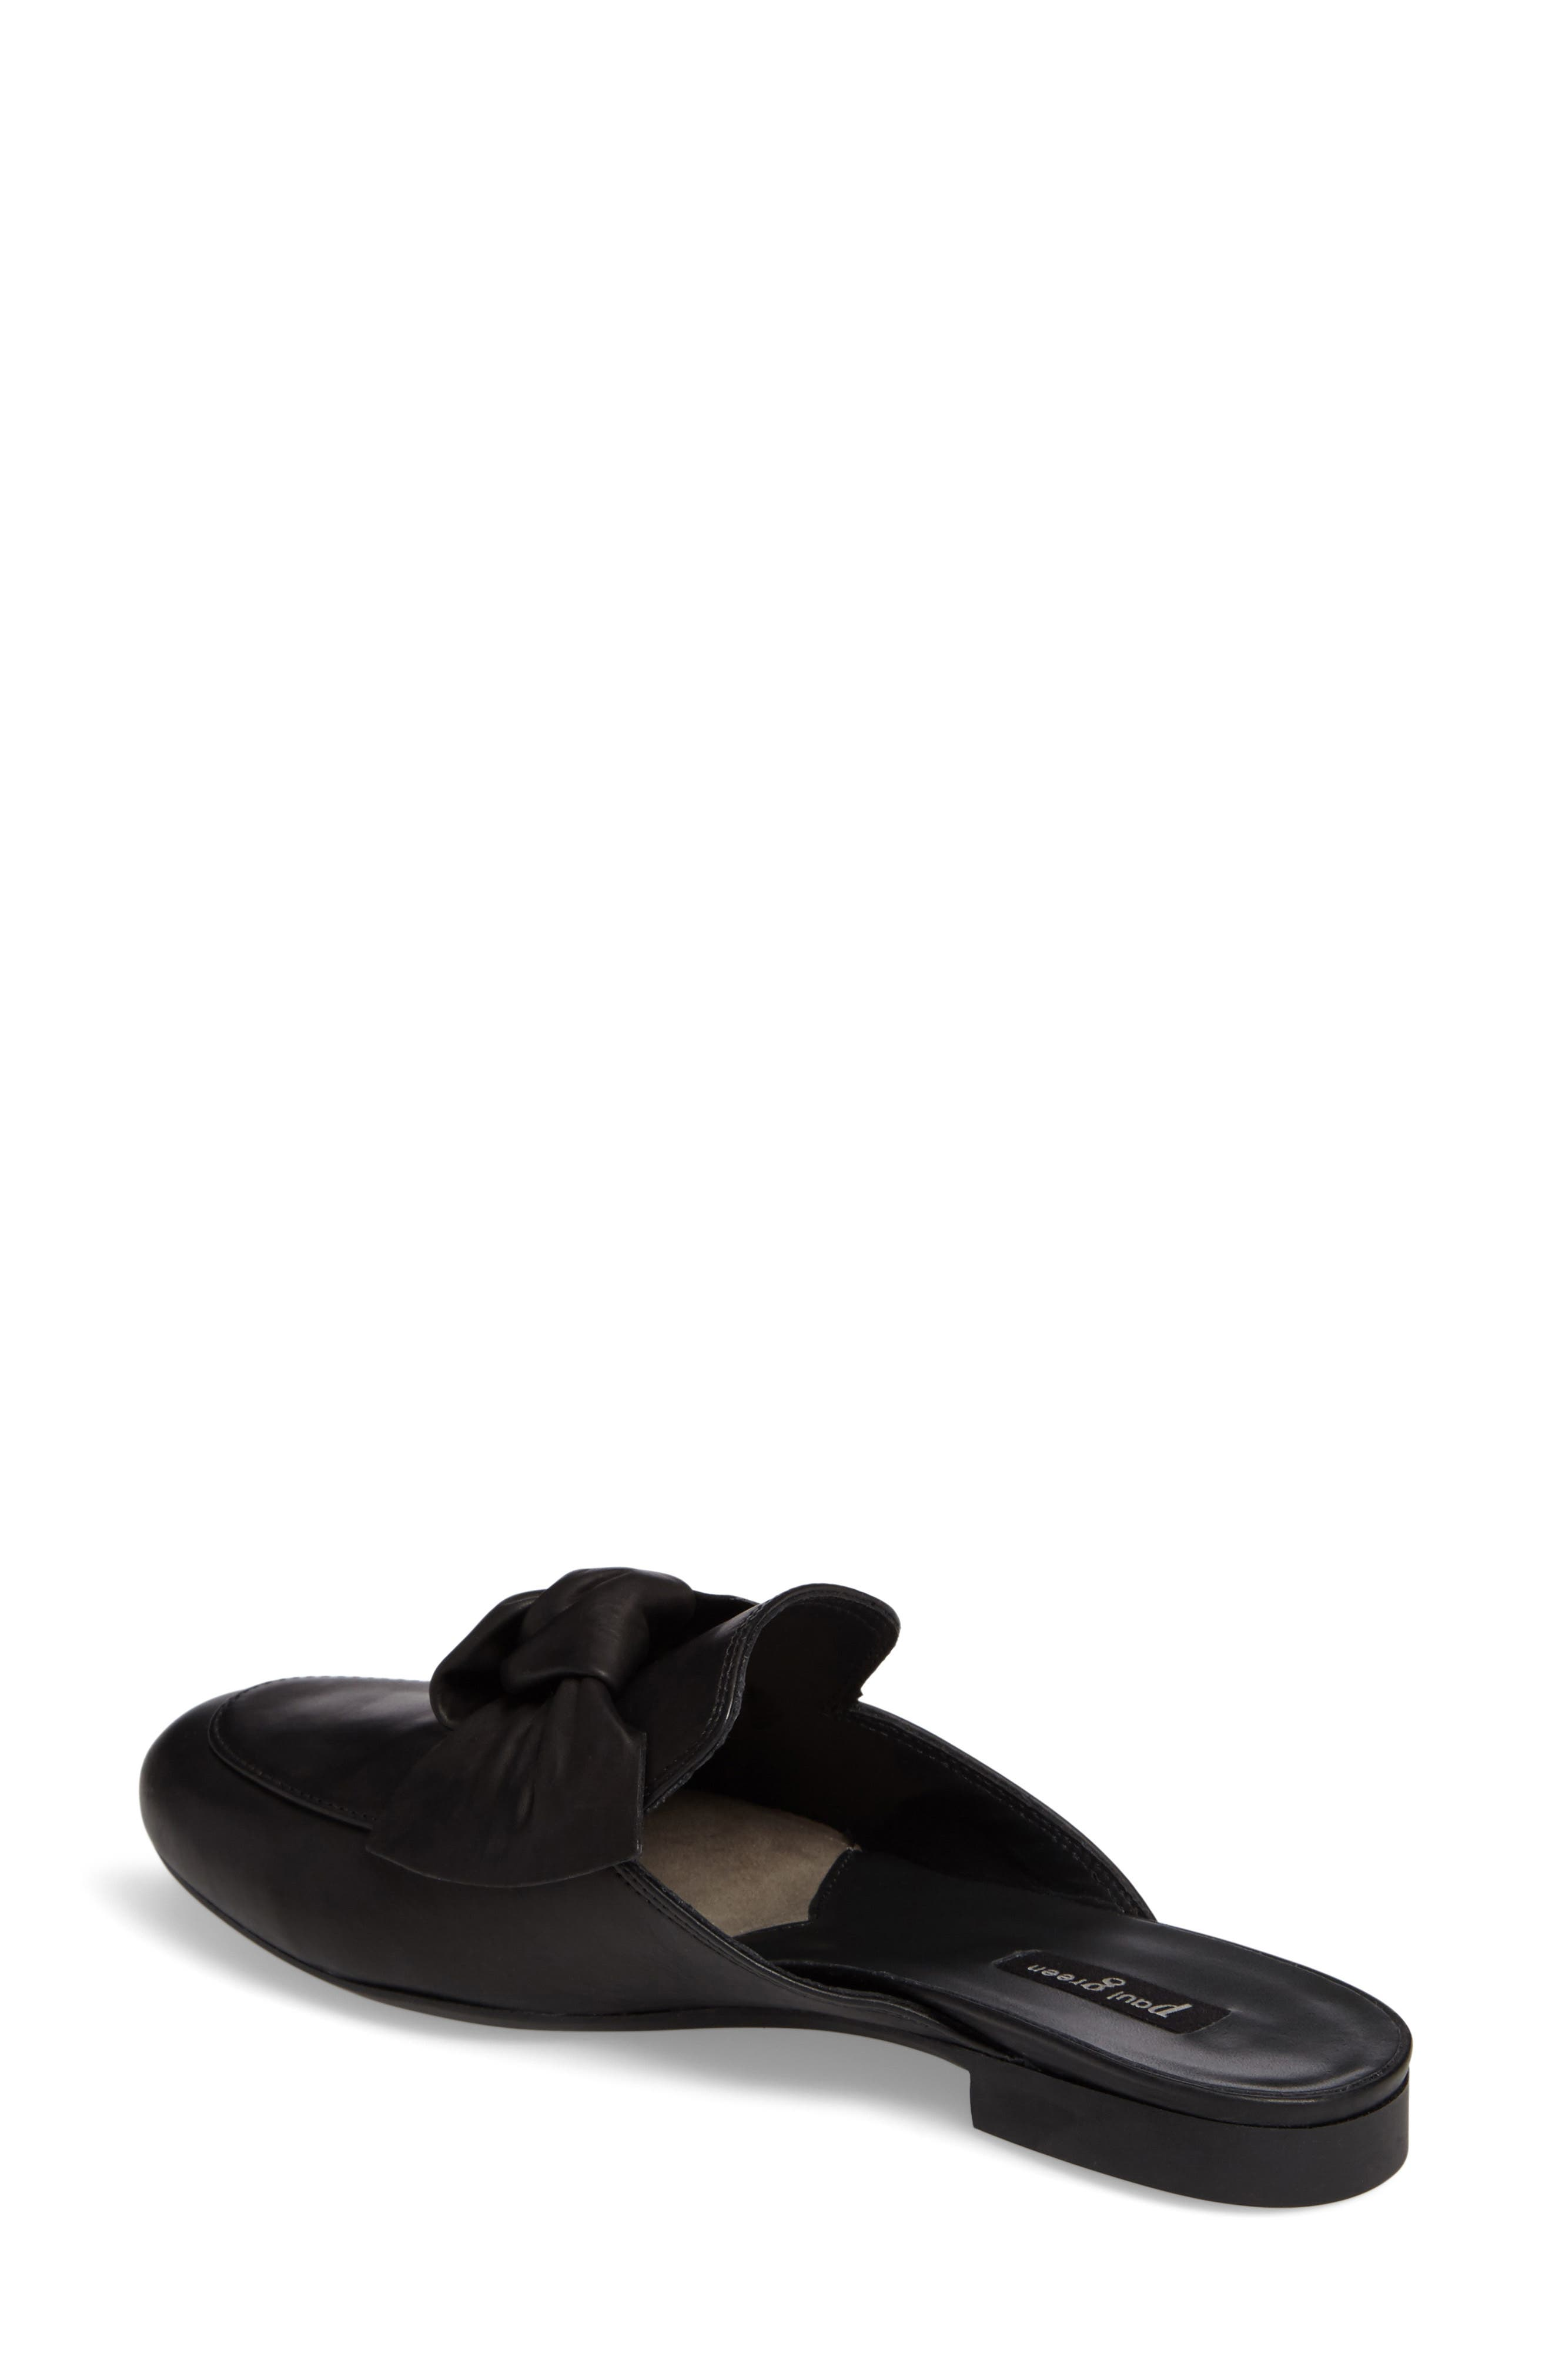 Mary Bow Mule Loafer,                             Alternate thumbnail 2, color,                             Black Leather